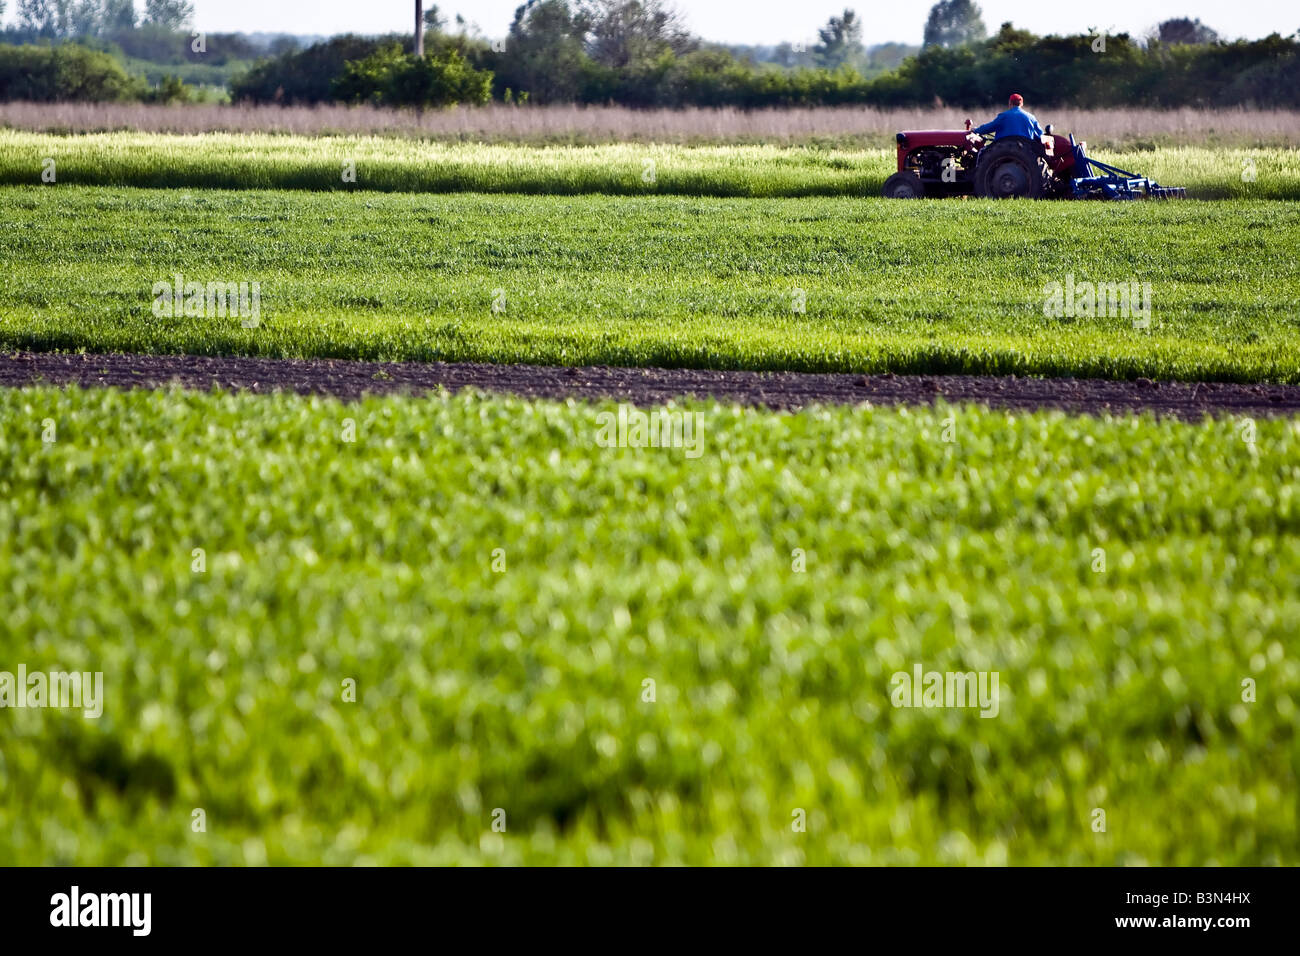 Farmer working with tractor on an agricultural field in spring - Stock Image